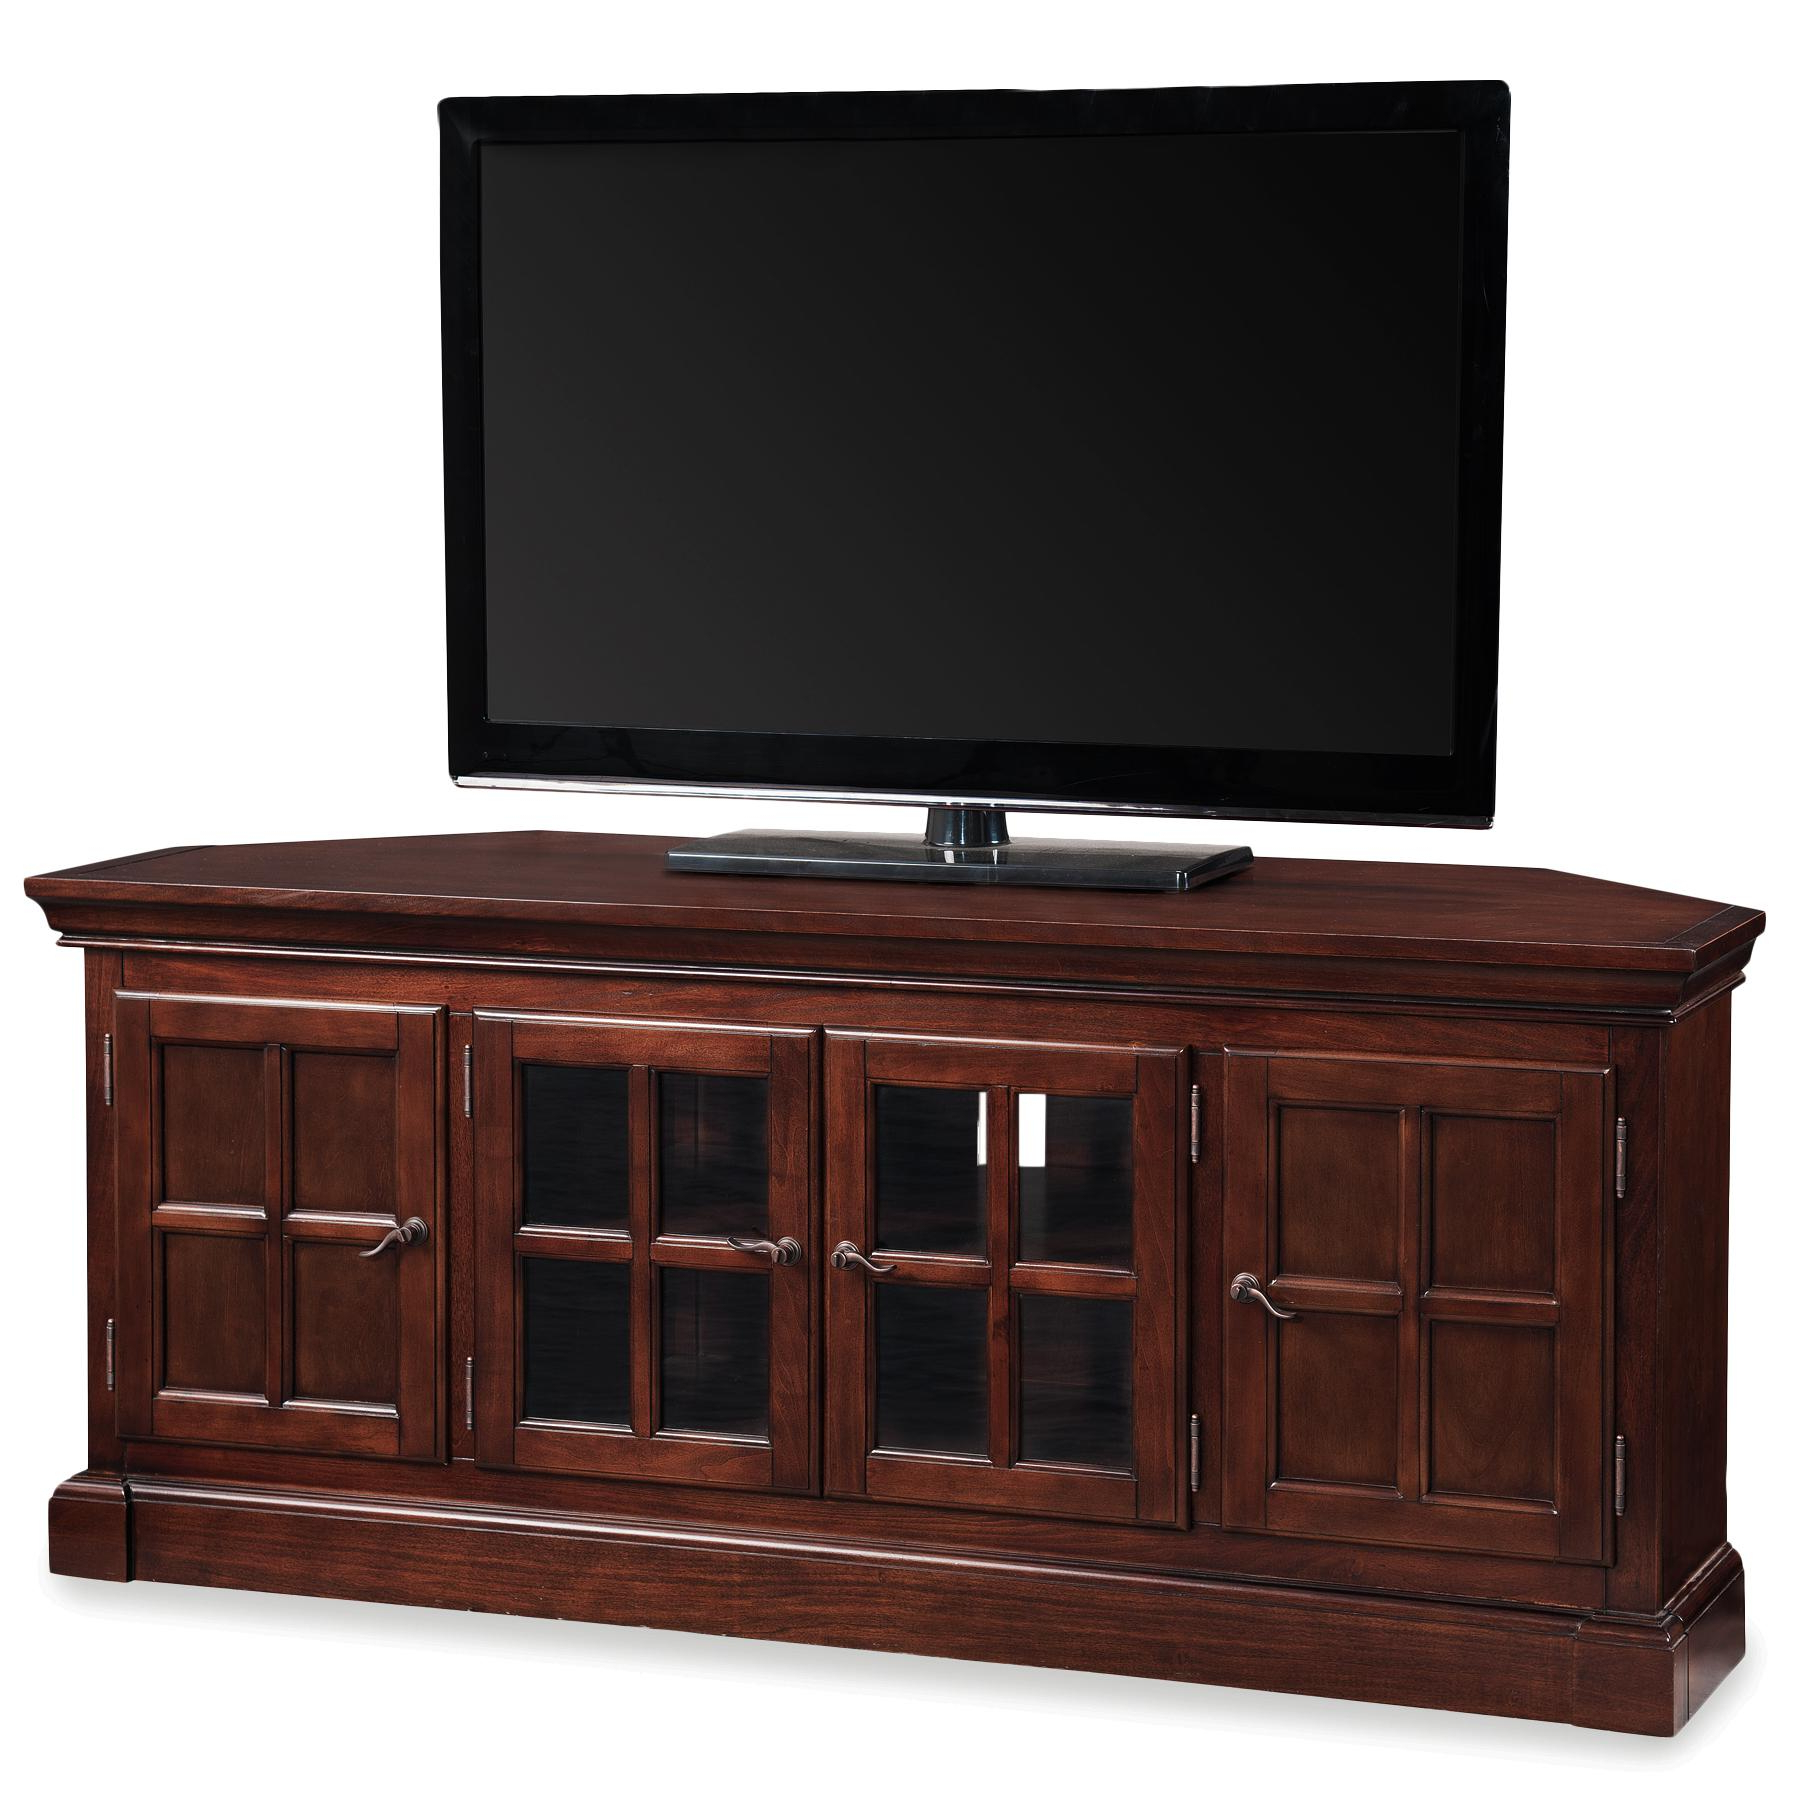 """2018 Tv Stands For Corners In Amazon: Leick 81586 Bella Maison 56"""" Corner Tv Stand With Lever (View 9 of 20)"""